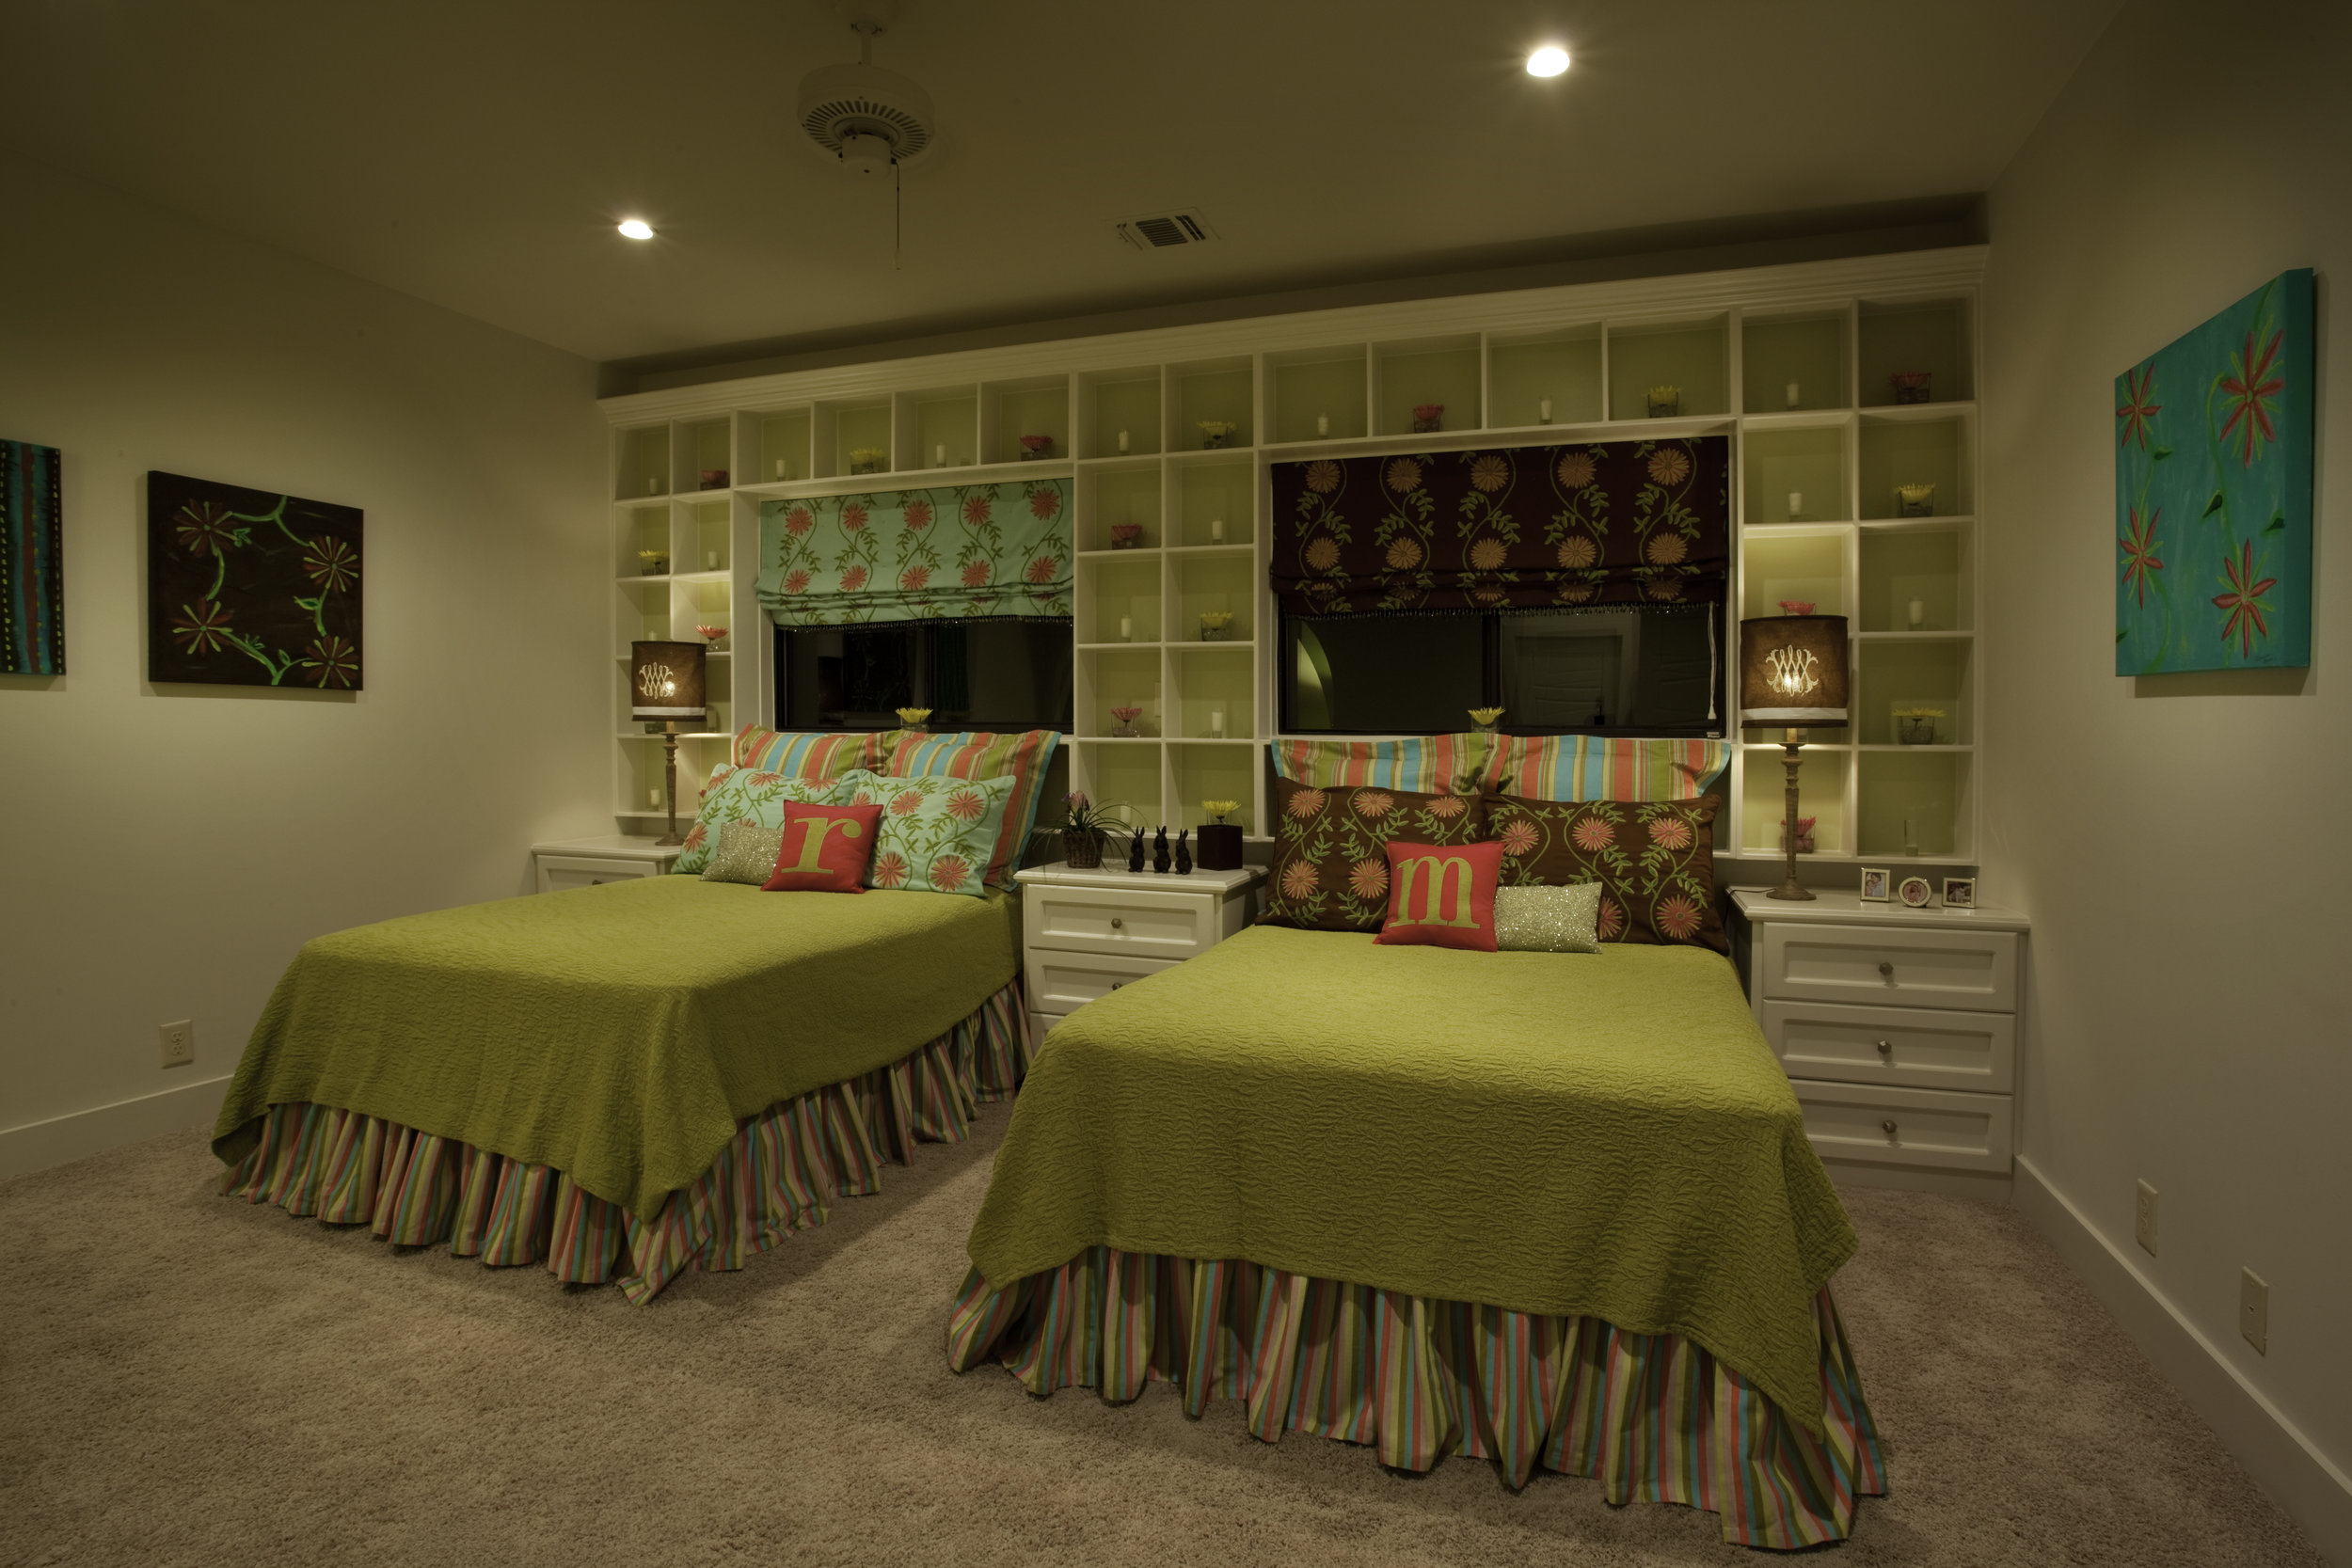 M & F Girls Bedroom to Beds.jpg